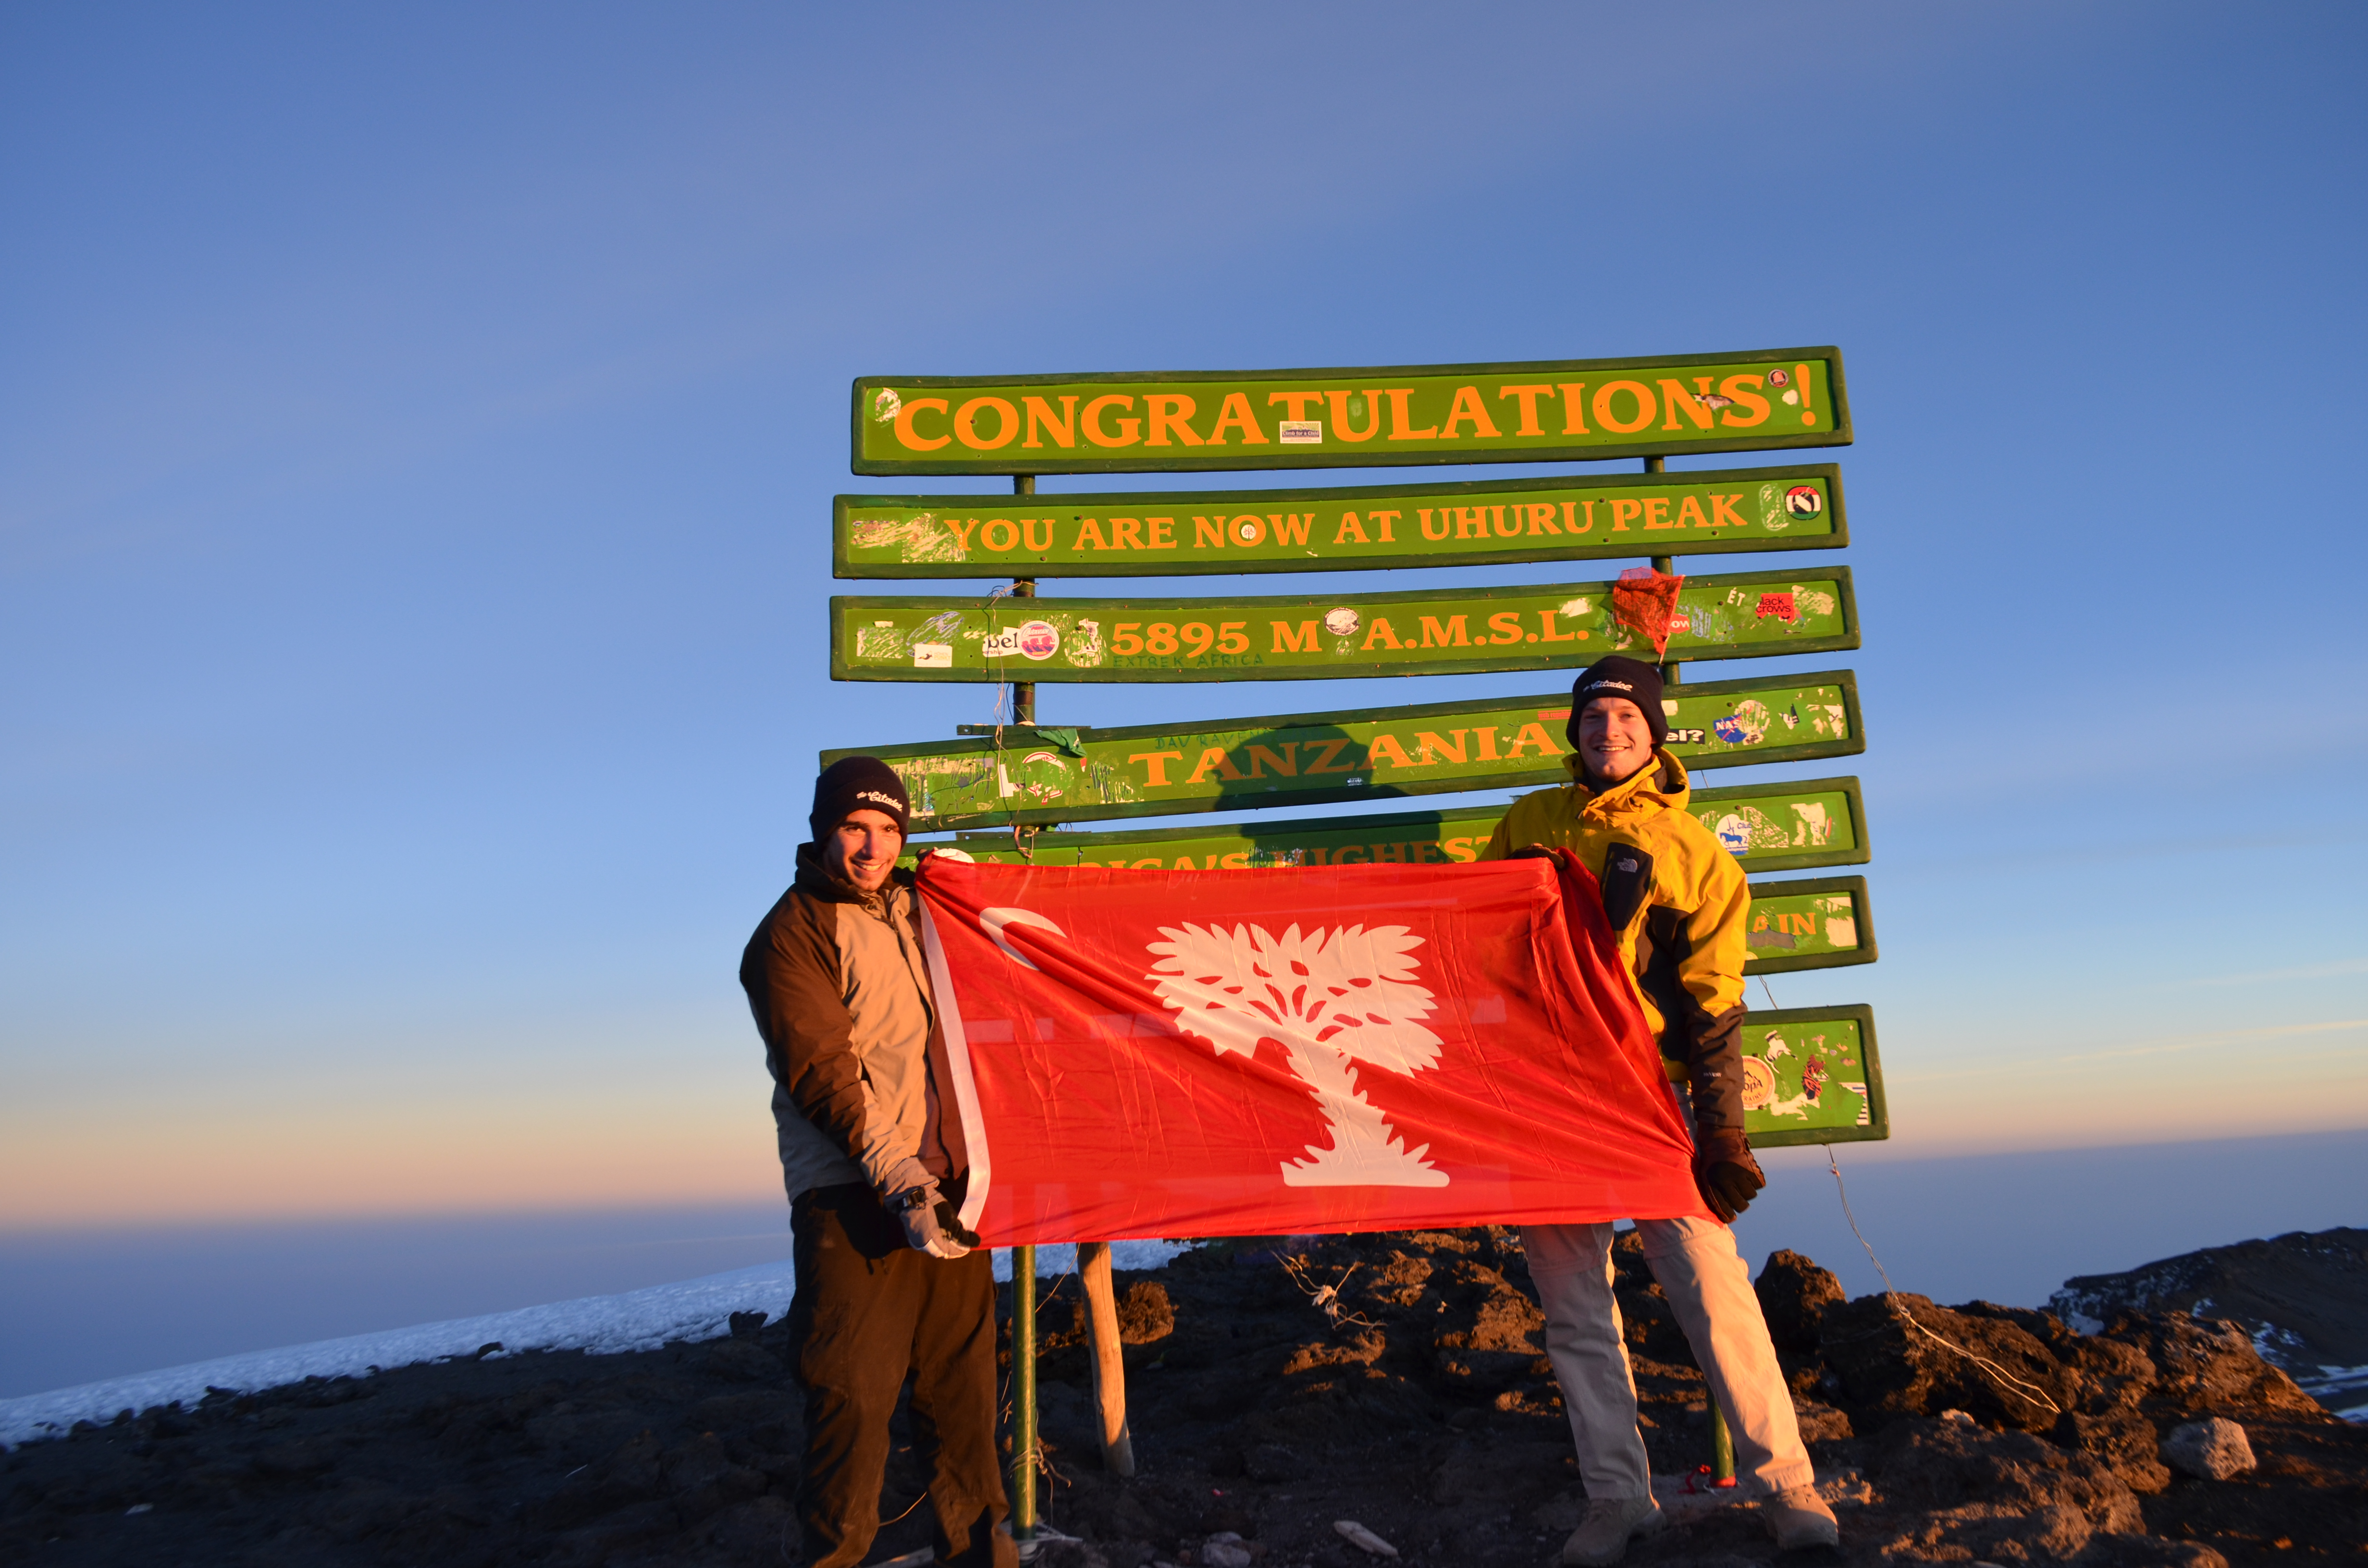 Strainere and classmate Franklin McGuire on the top of Mt. Kilimanjaro